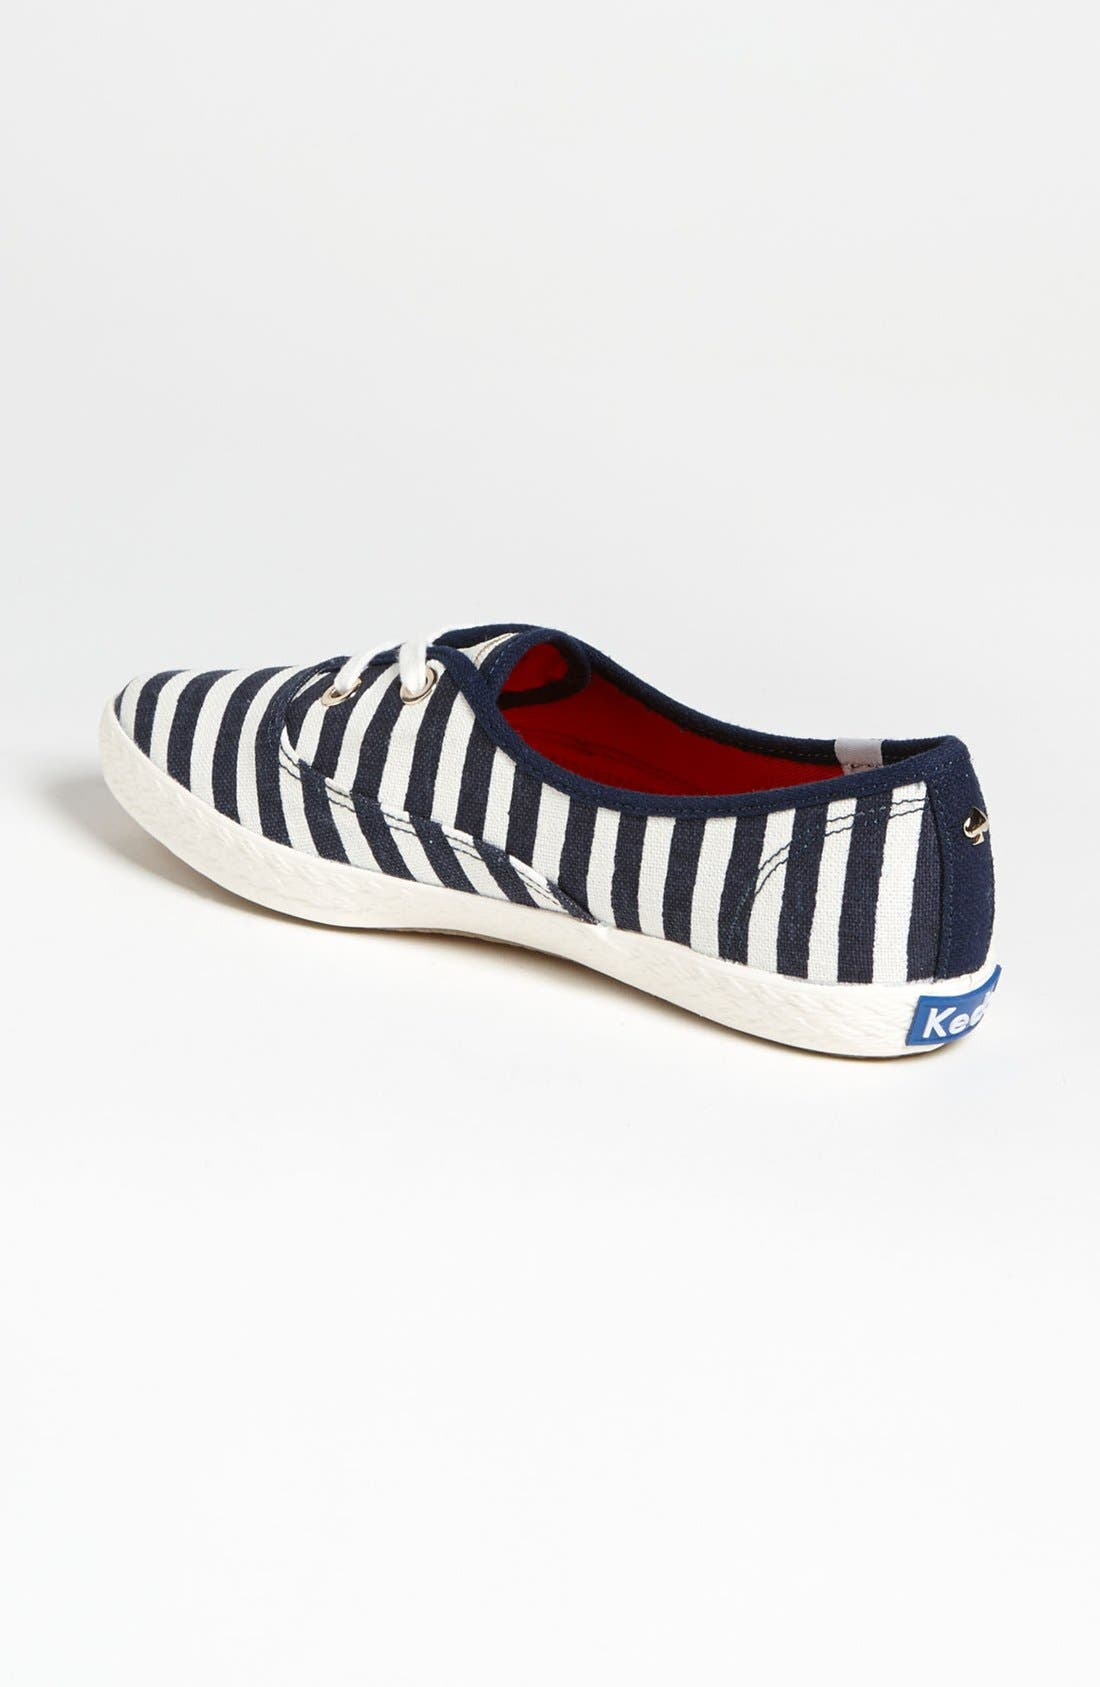 ,                             Keds<sup>®</sup> for kate spade new york 'pointer' sneaker,                             Alternate thumbnail 2, color,                             473